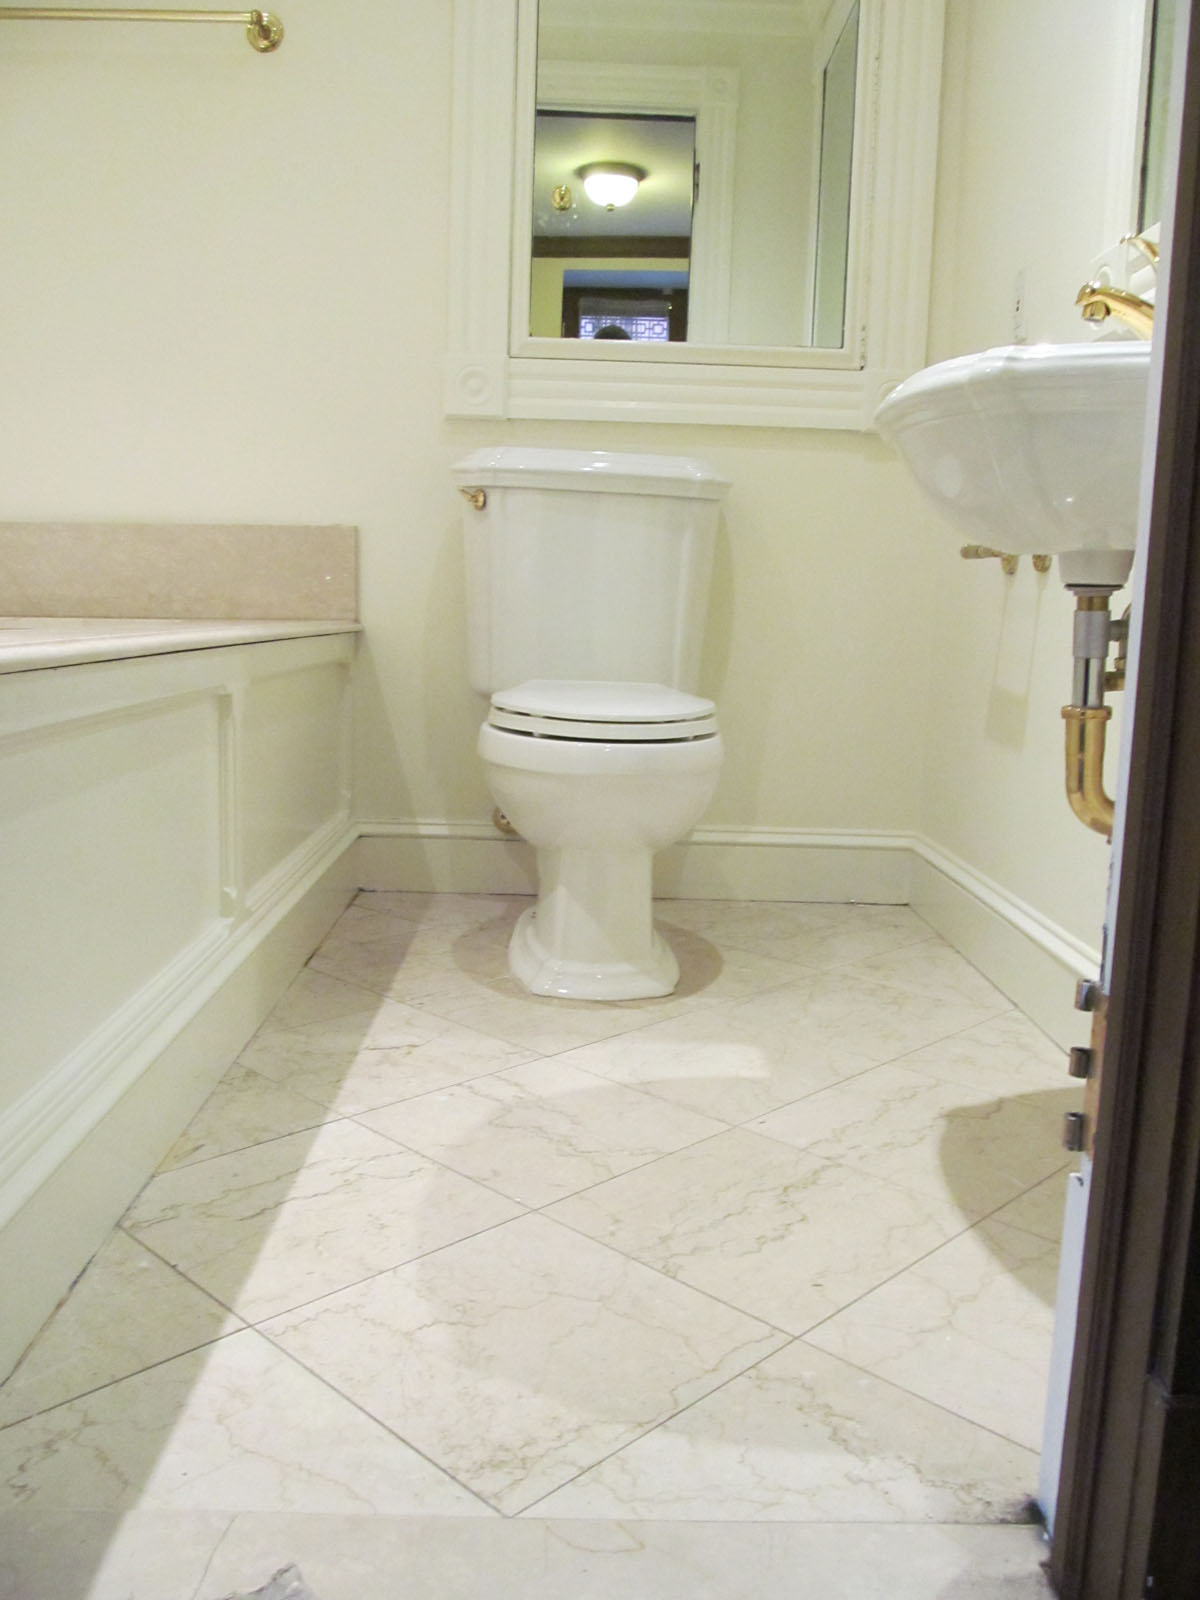 beacon st boston before remodel showing tub surround sink tile